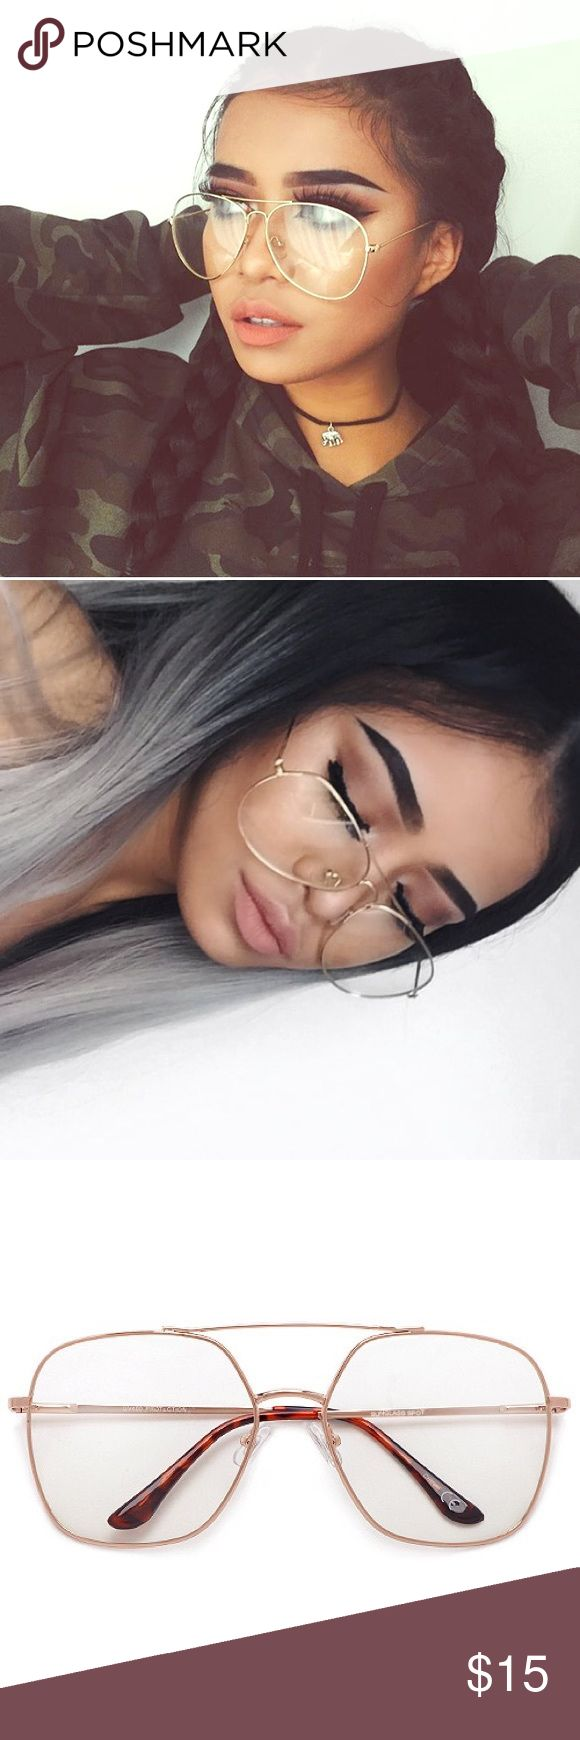 ONLY 1 LEFT! Bookworm TRENDY Sunglasses THEY ARE BACK! Turn these babies into your trendy'ess most favorite glasses. Amazing Quality guarantee ! Not listed brand ✨✨ UVA & UVB Protection  * Modernize Aviator  * Designer Inspired  * Nickel Finish Metal Frame  * Polycarbonate UV400 Lens * Microfiber Bag Included Quay Australia Accessories Sunglasses